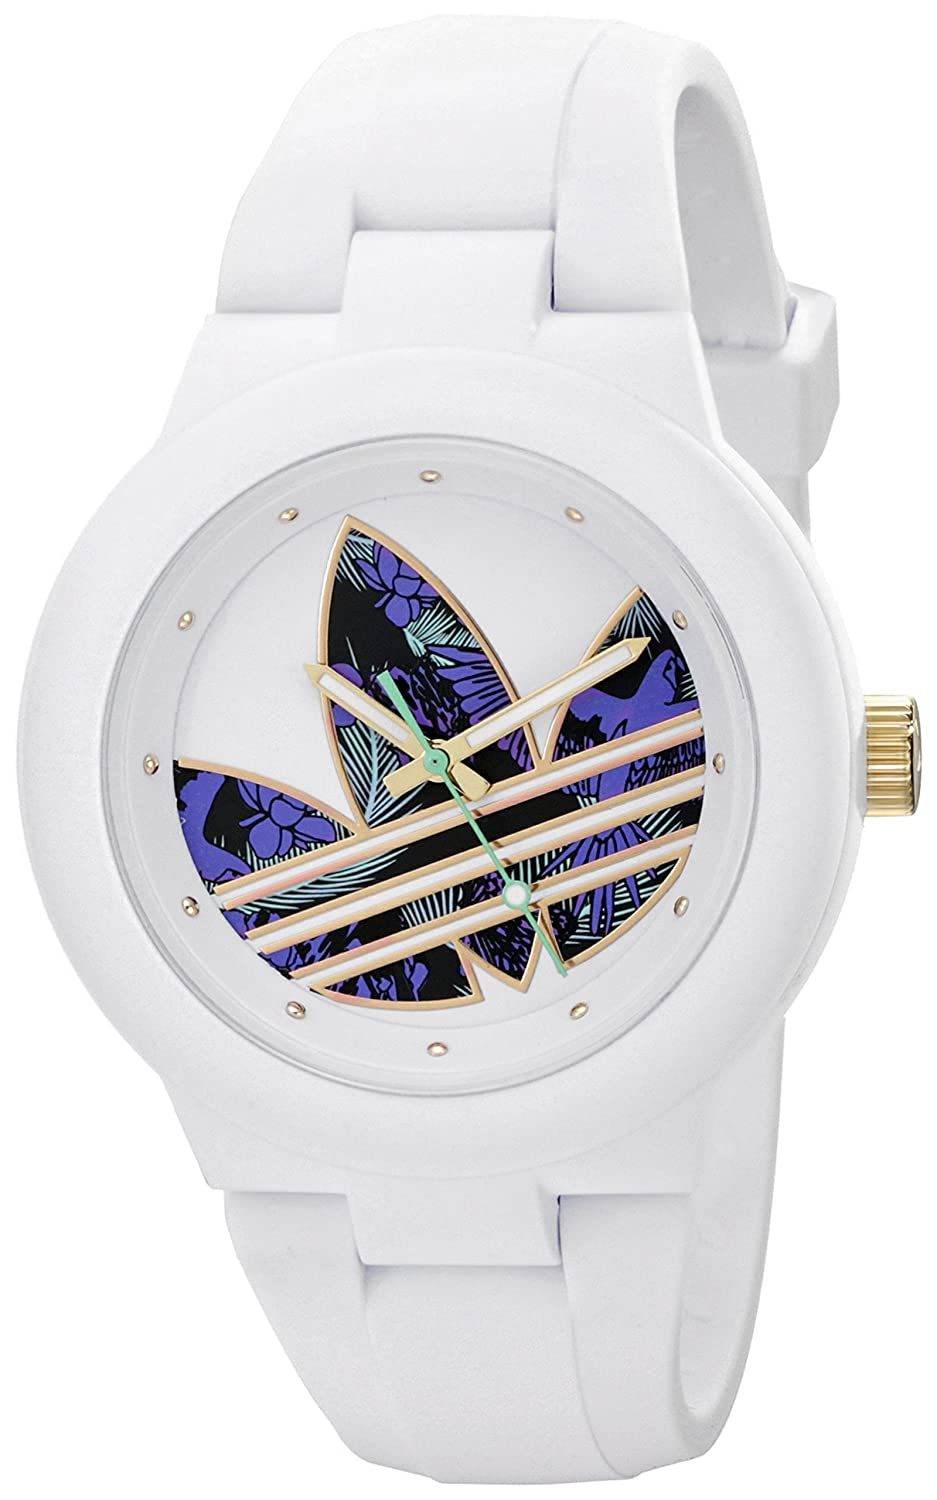 Adidas Watches For Women Adh3017 Aberdeen Red Dial Rubber Strap Womens Adh White Stainless Steel Watch With Polyurethane Band 937x1500